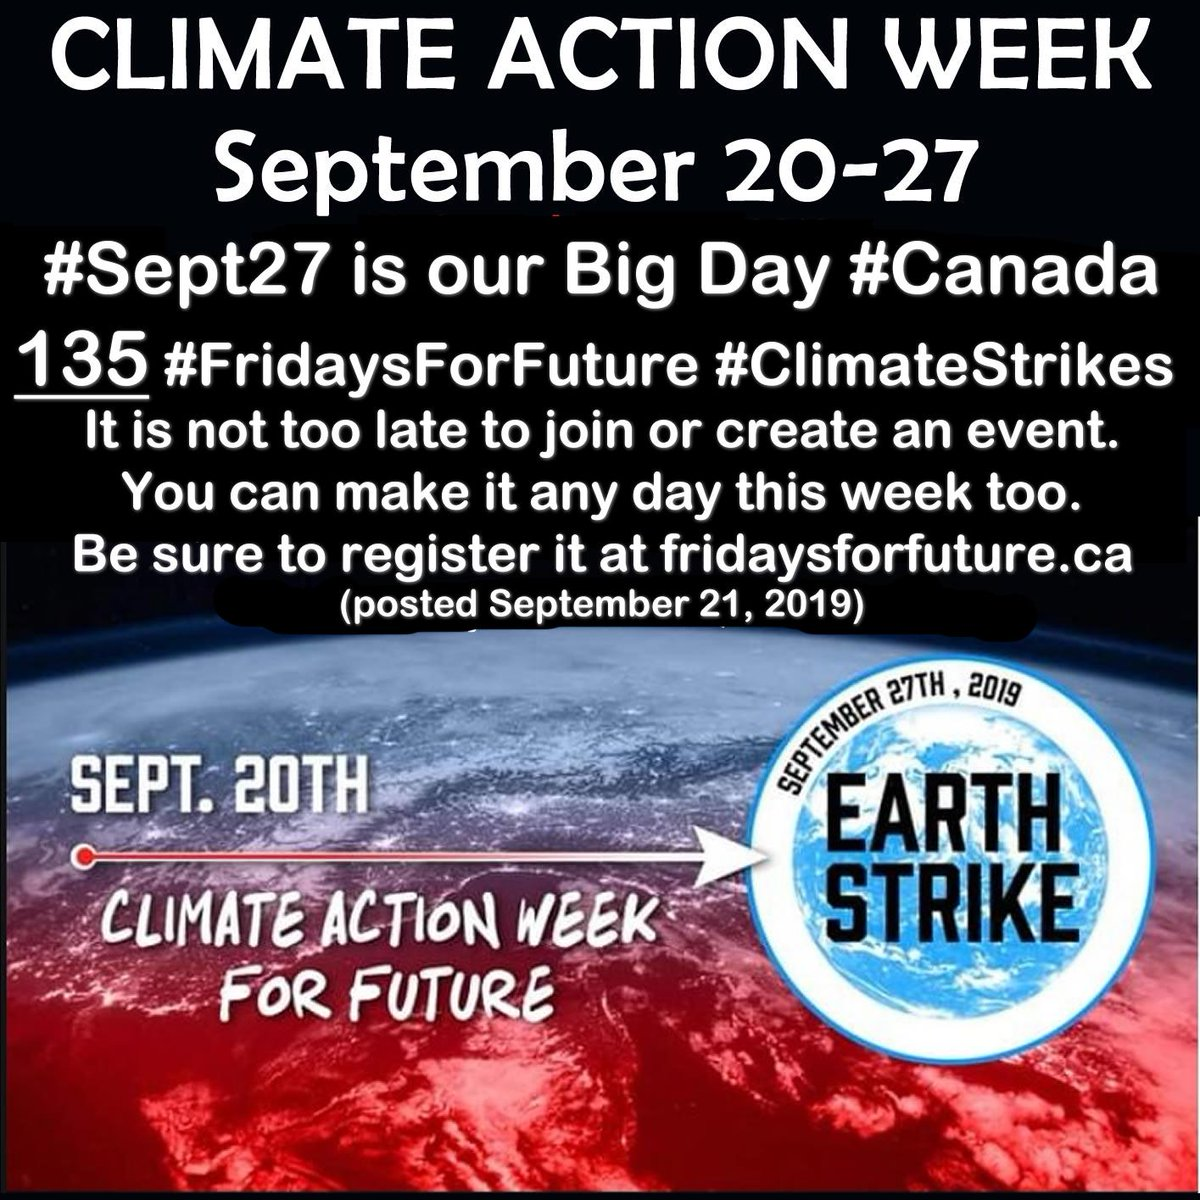 Our big strike day #Canada Friday #Sept27. Lets smash our May 24 record=104 strikes. You can conduct an event/strike any day . Current global data for Climate Action Week For Future as of Sept 21: 169 countries 3150 cities 6253 events REGISTER EVENT: fridaysforfuture.ca/register-event/